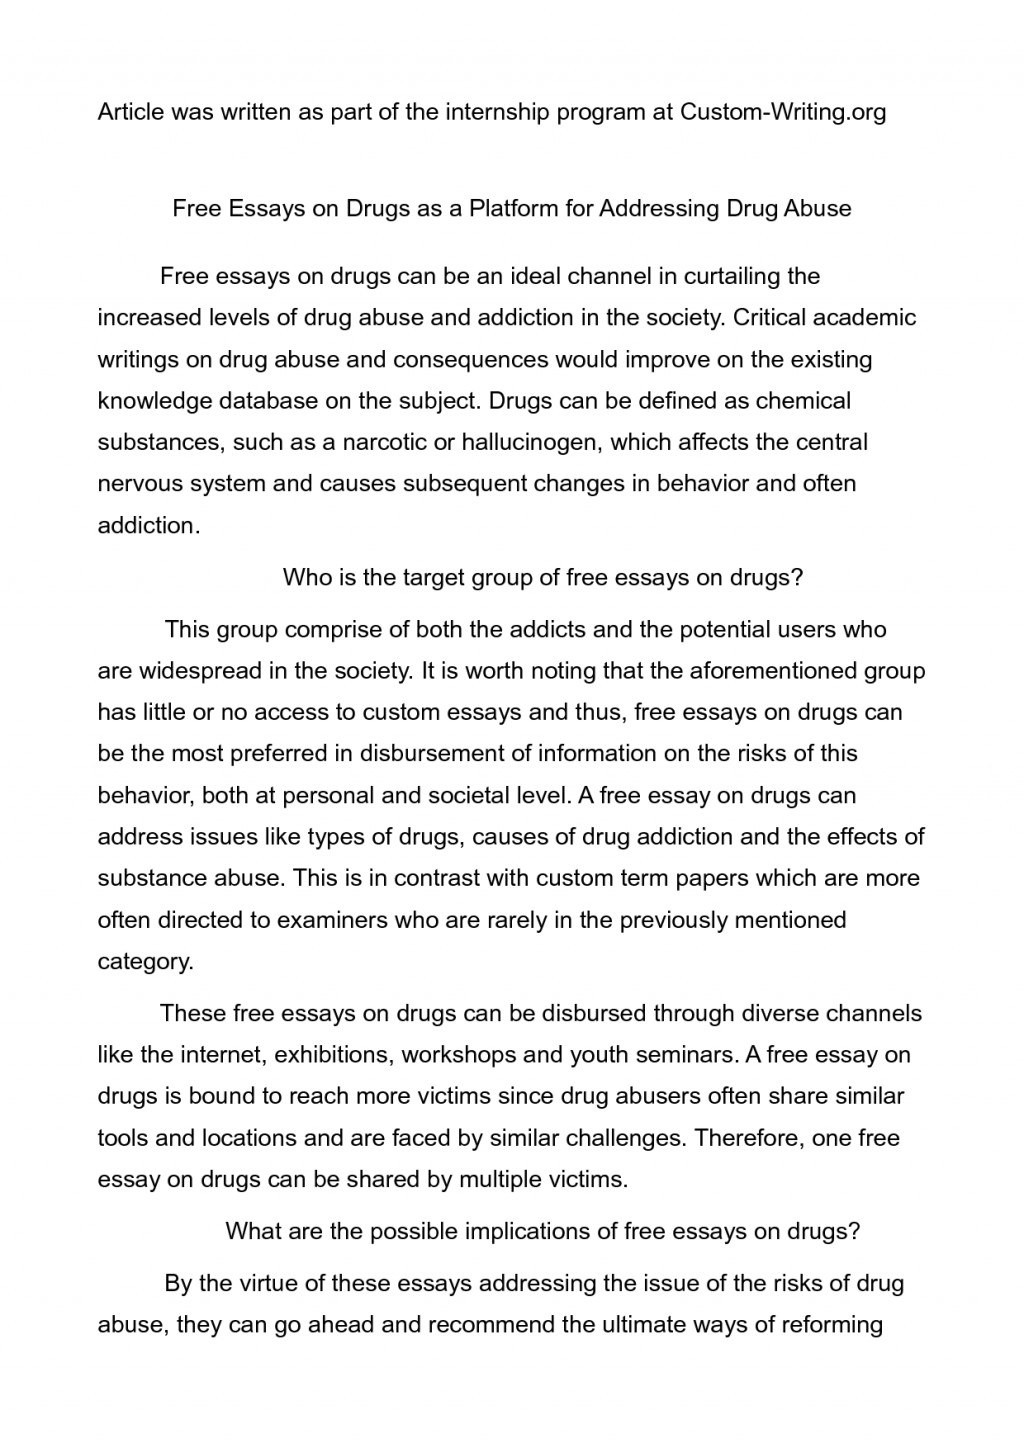 009 Argumentative Essay About Drugs Amazing Introduction Pdf Definition Format & Examples Topics Education Large